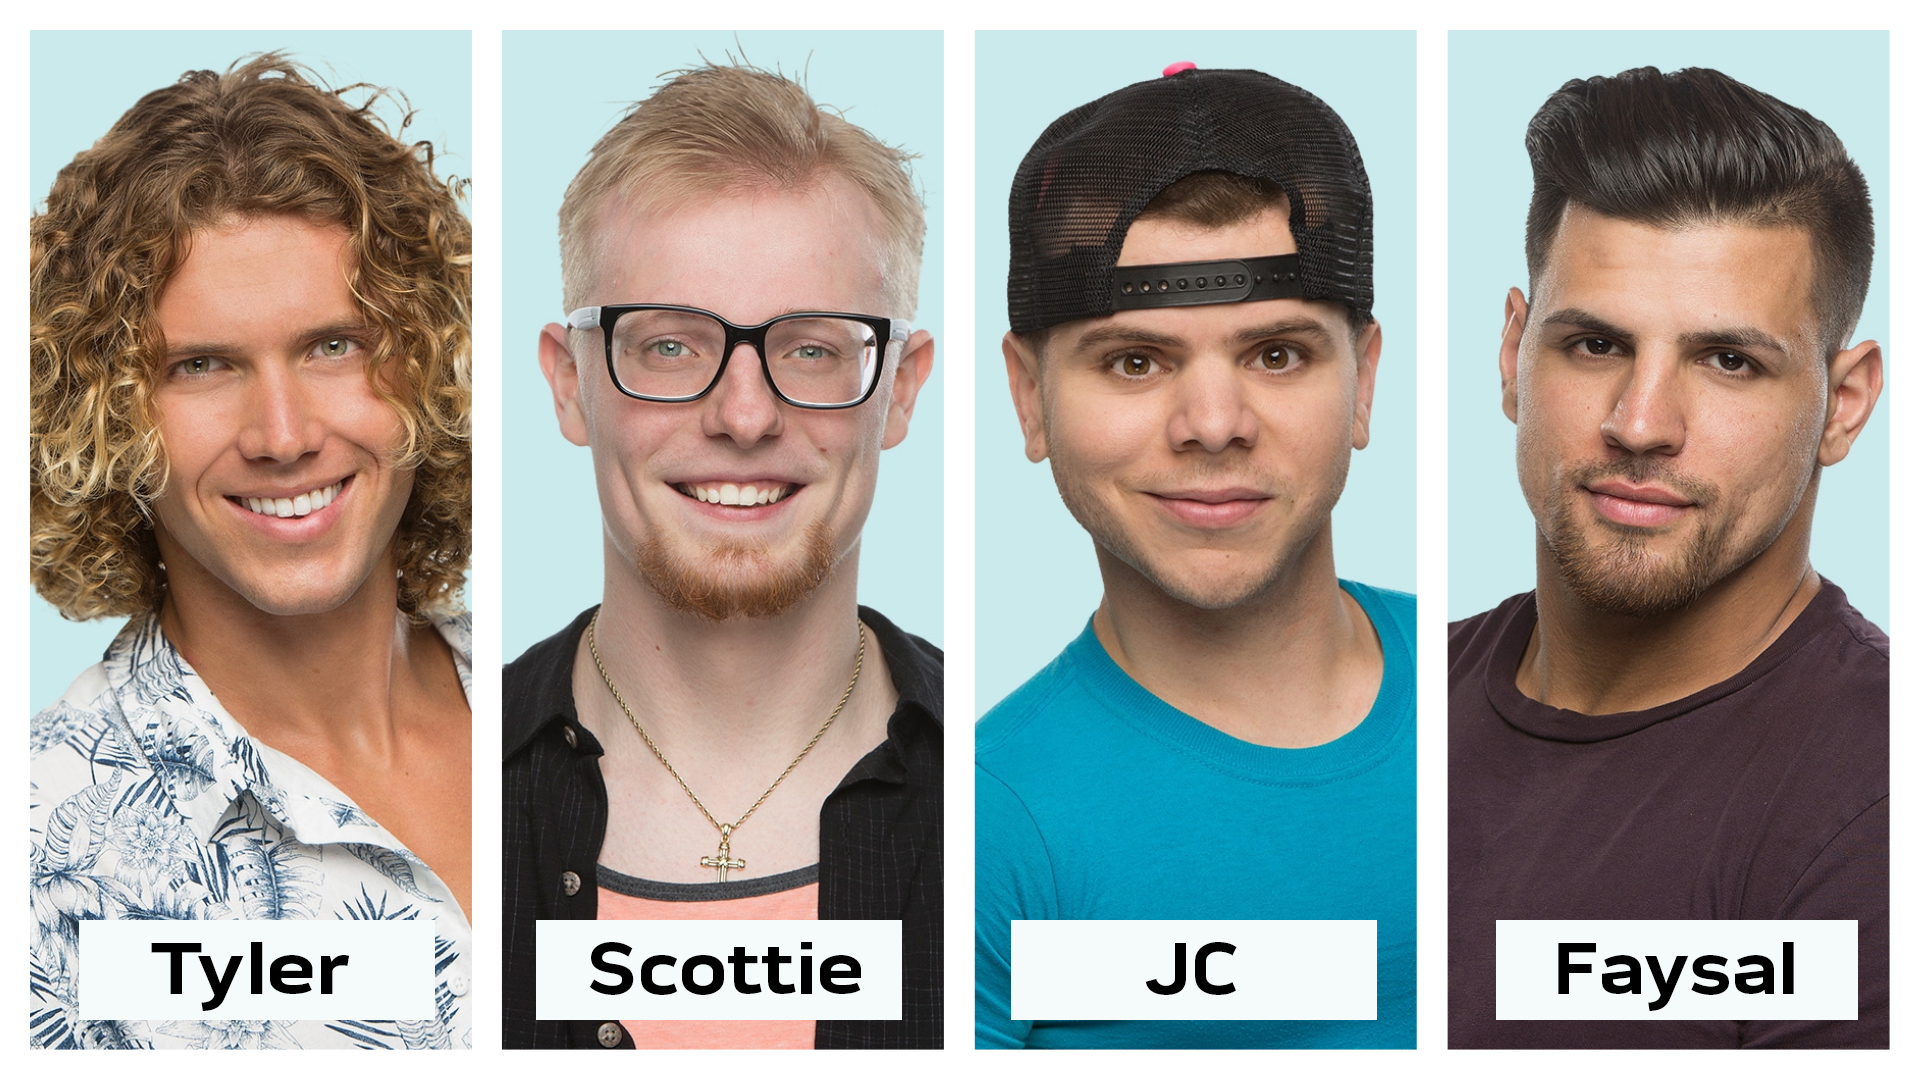 Who was the only Houseguest that voted to save Kaitlyn?